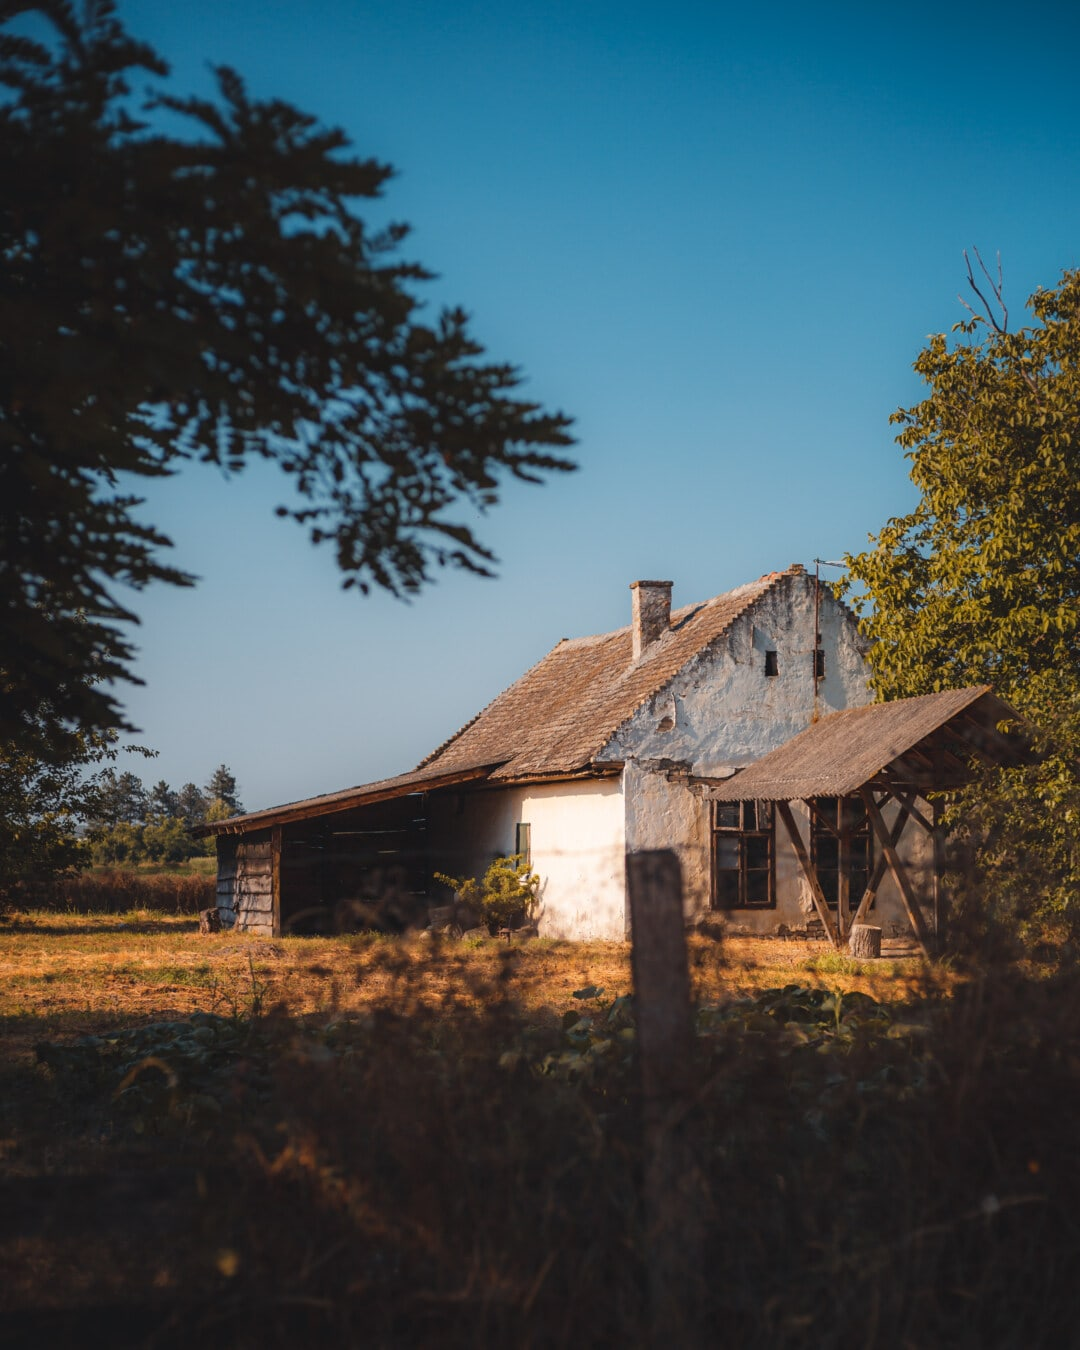 backyard, house, village, old, poverty, rural, decay, abandoned, barn, home